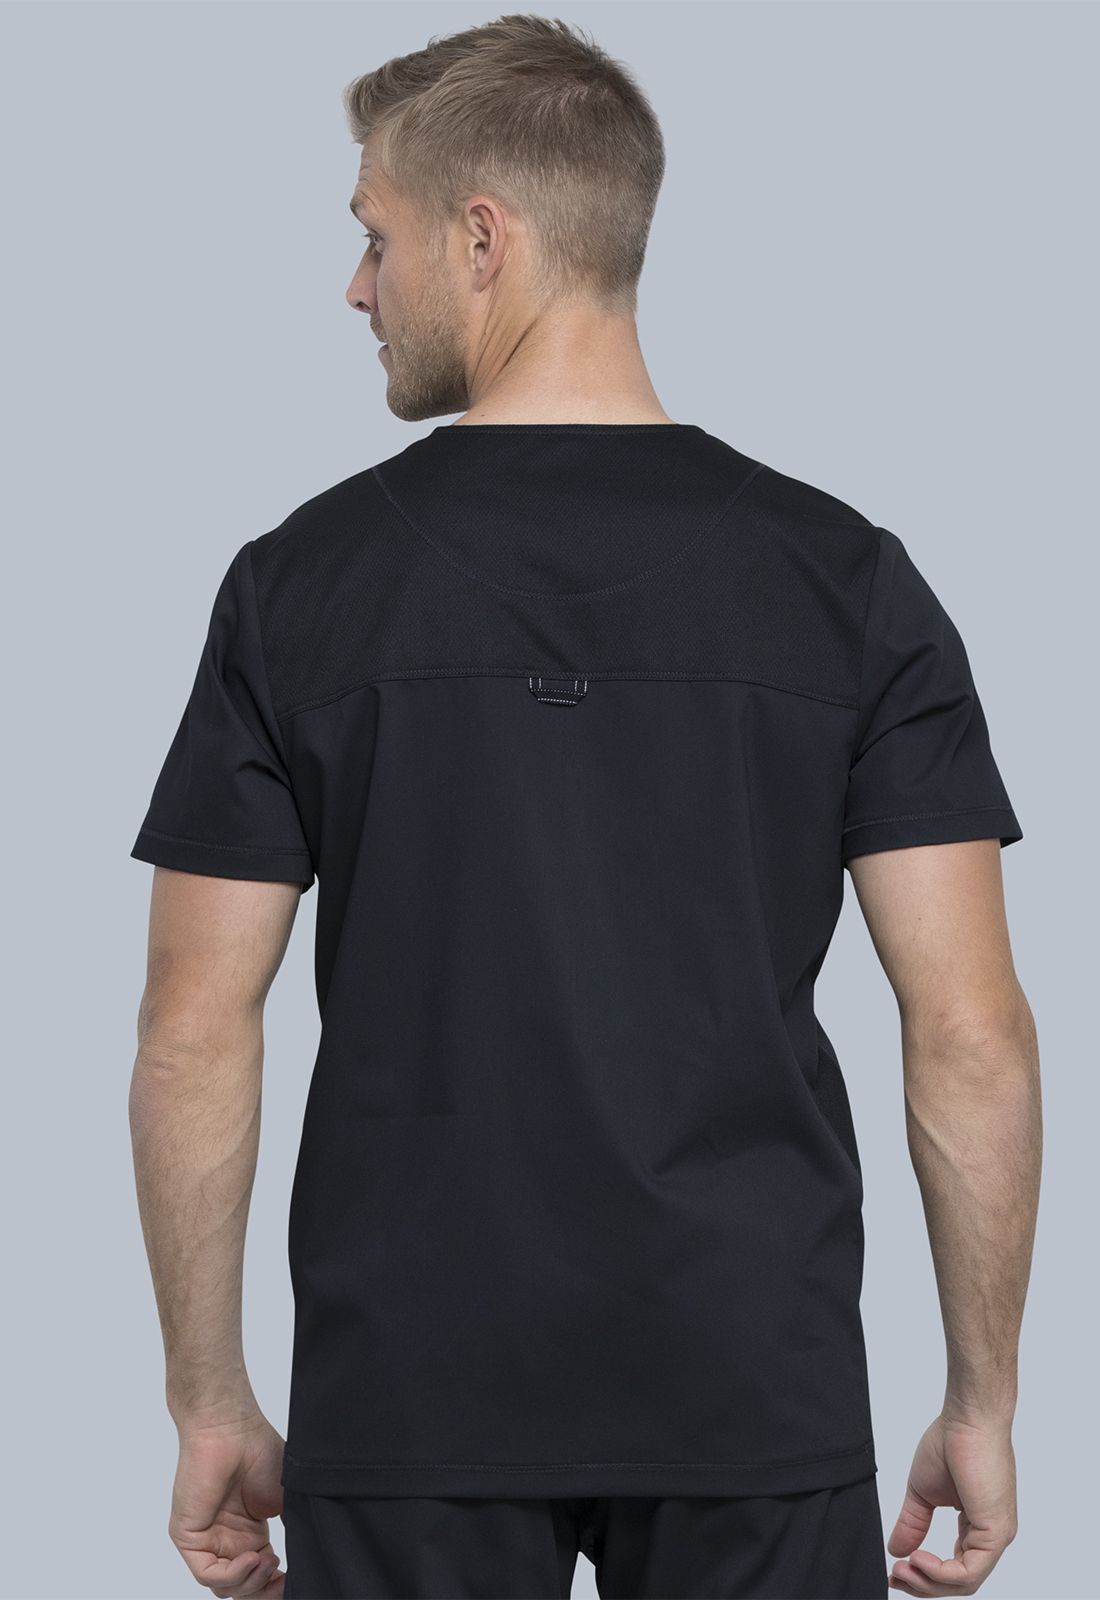 https://medcloth.by/images/stories/virtuemart/product/ww603-black-4.jpg